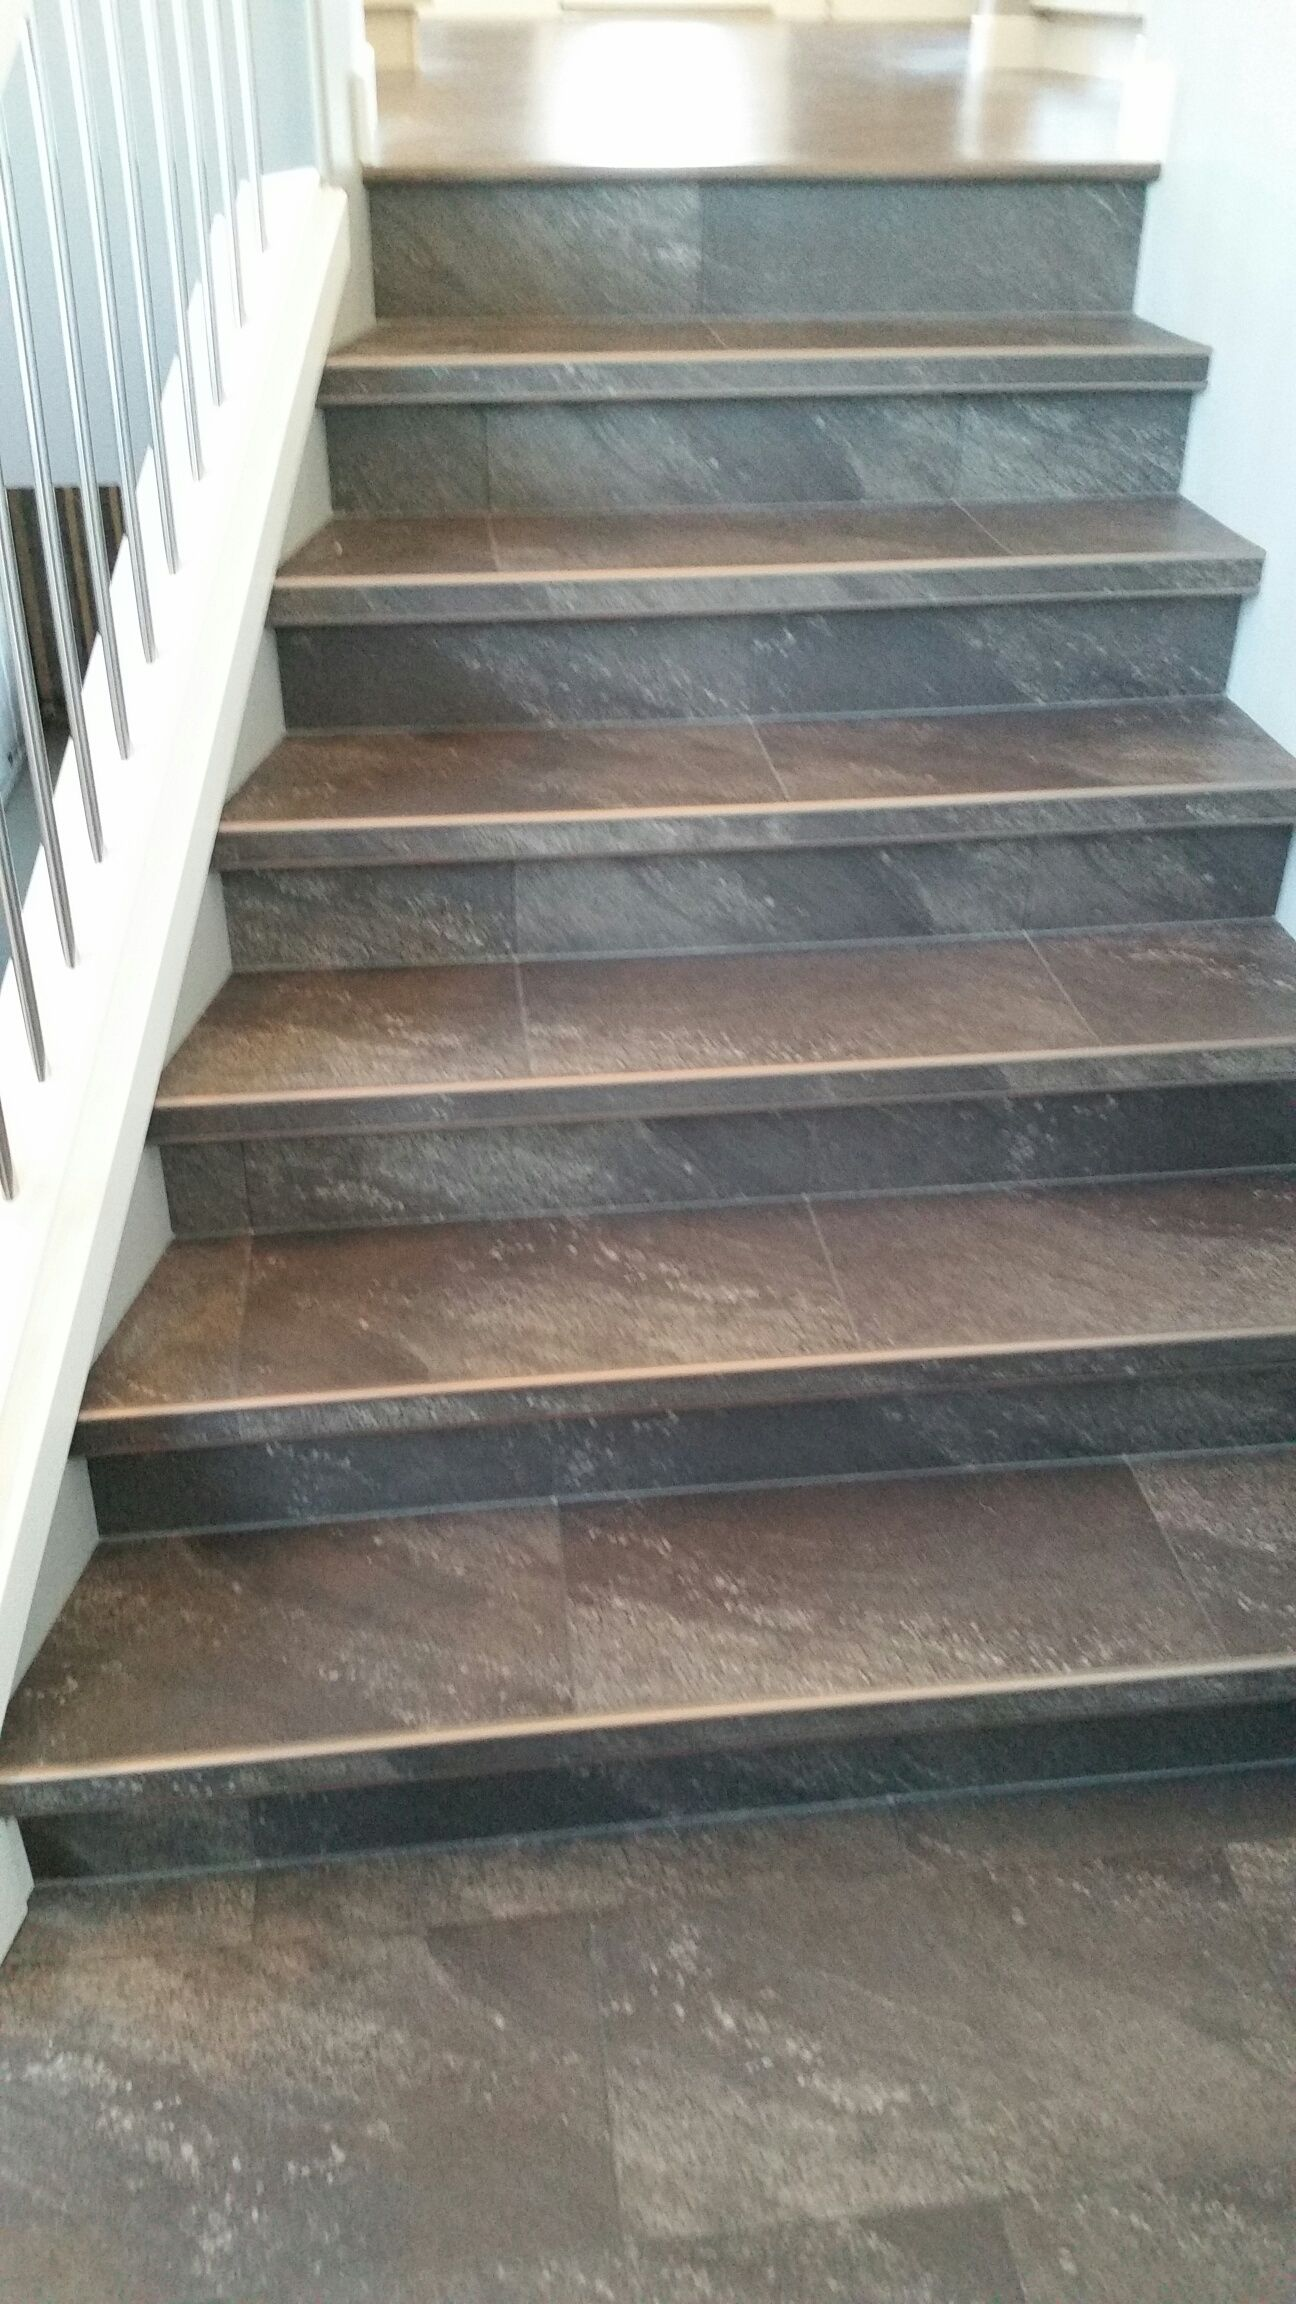 Luxury Vinyl Tile Installed With Custom Insert Stair | Installing Carpet On Concrete Stairs